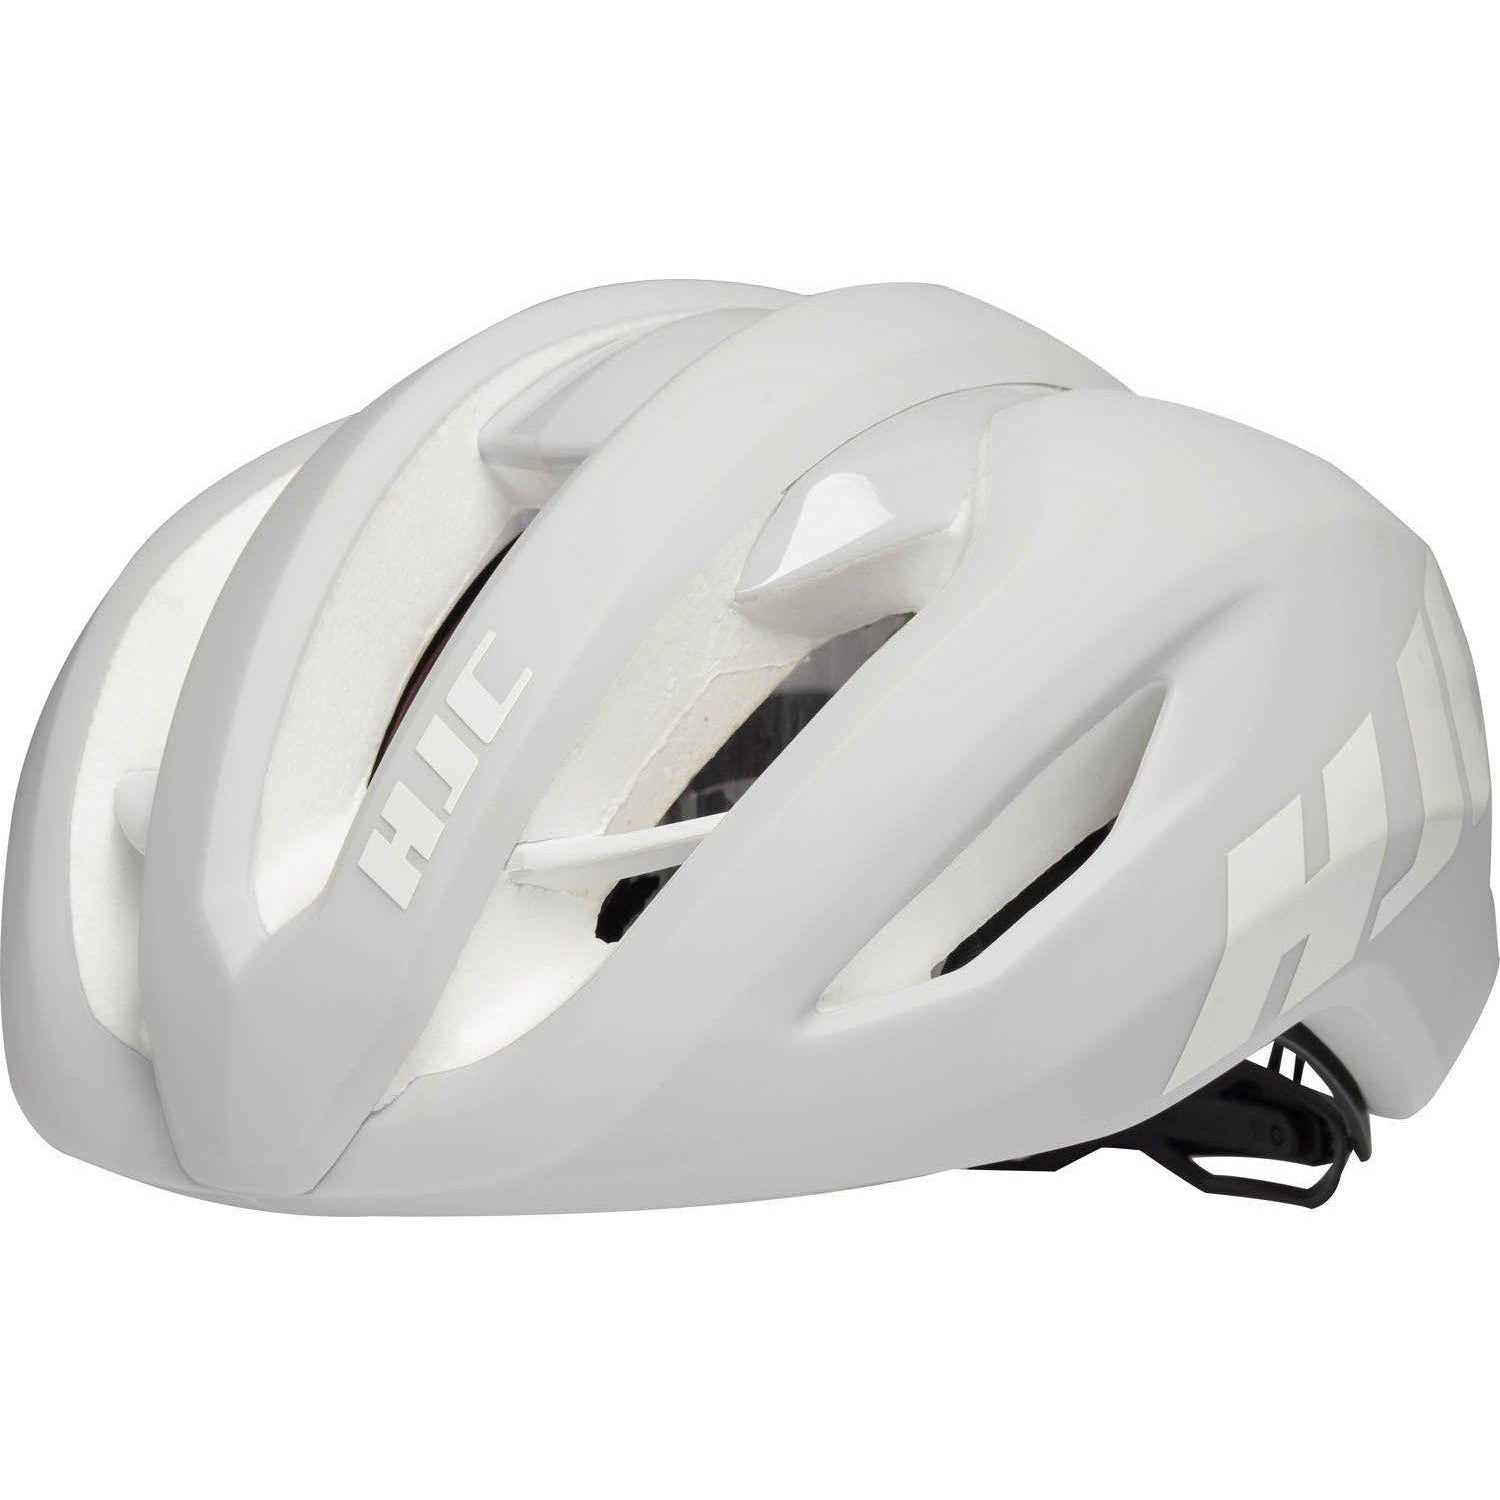 HJC-HJC Valeco Road Cycling Helmet-Lotto Soudal/White-S-HJC81208401-saddleback-elite-performance-cycling